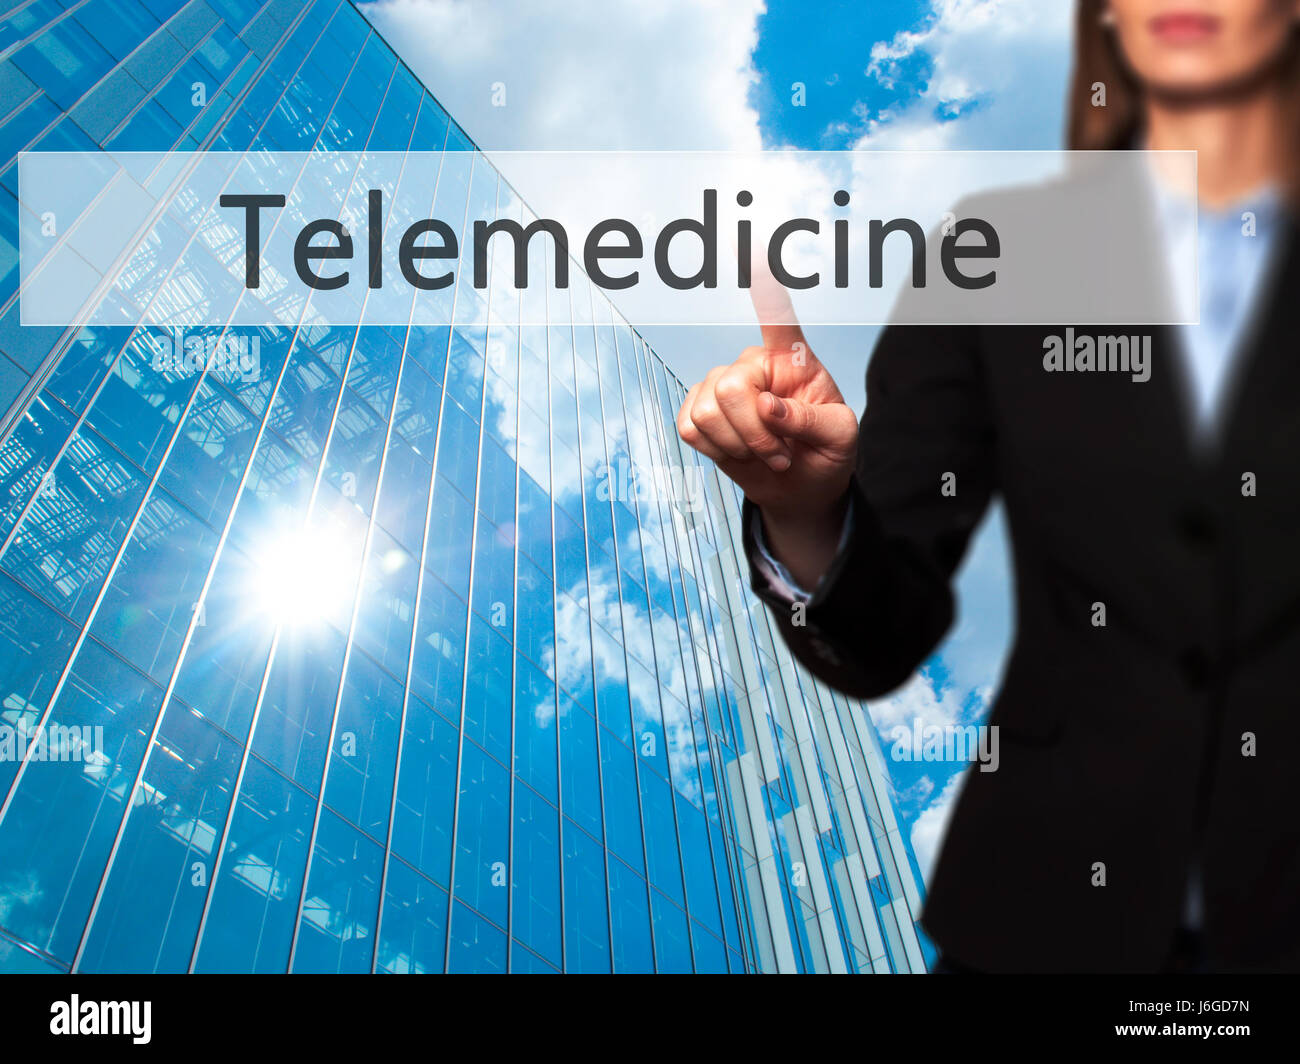 Telemedicine - Businesswoman hand pressing button on touch screen interface. Business, technology, internet concept. - Stock Image